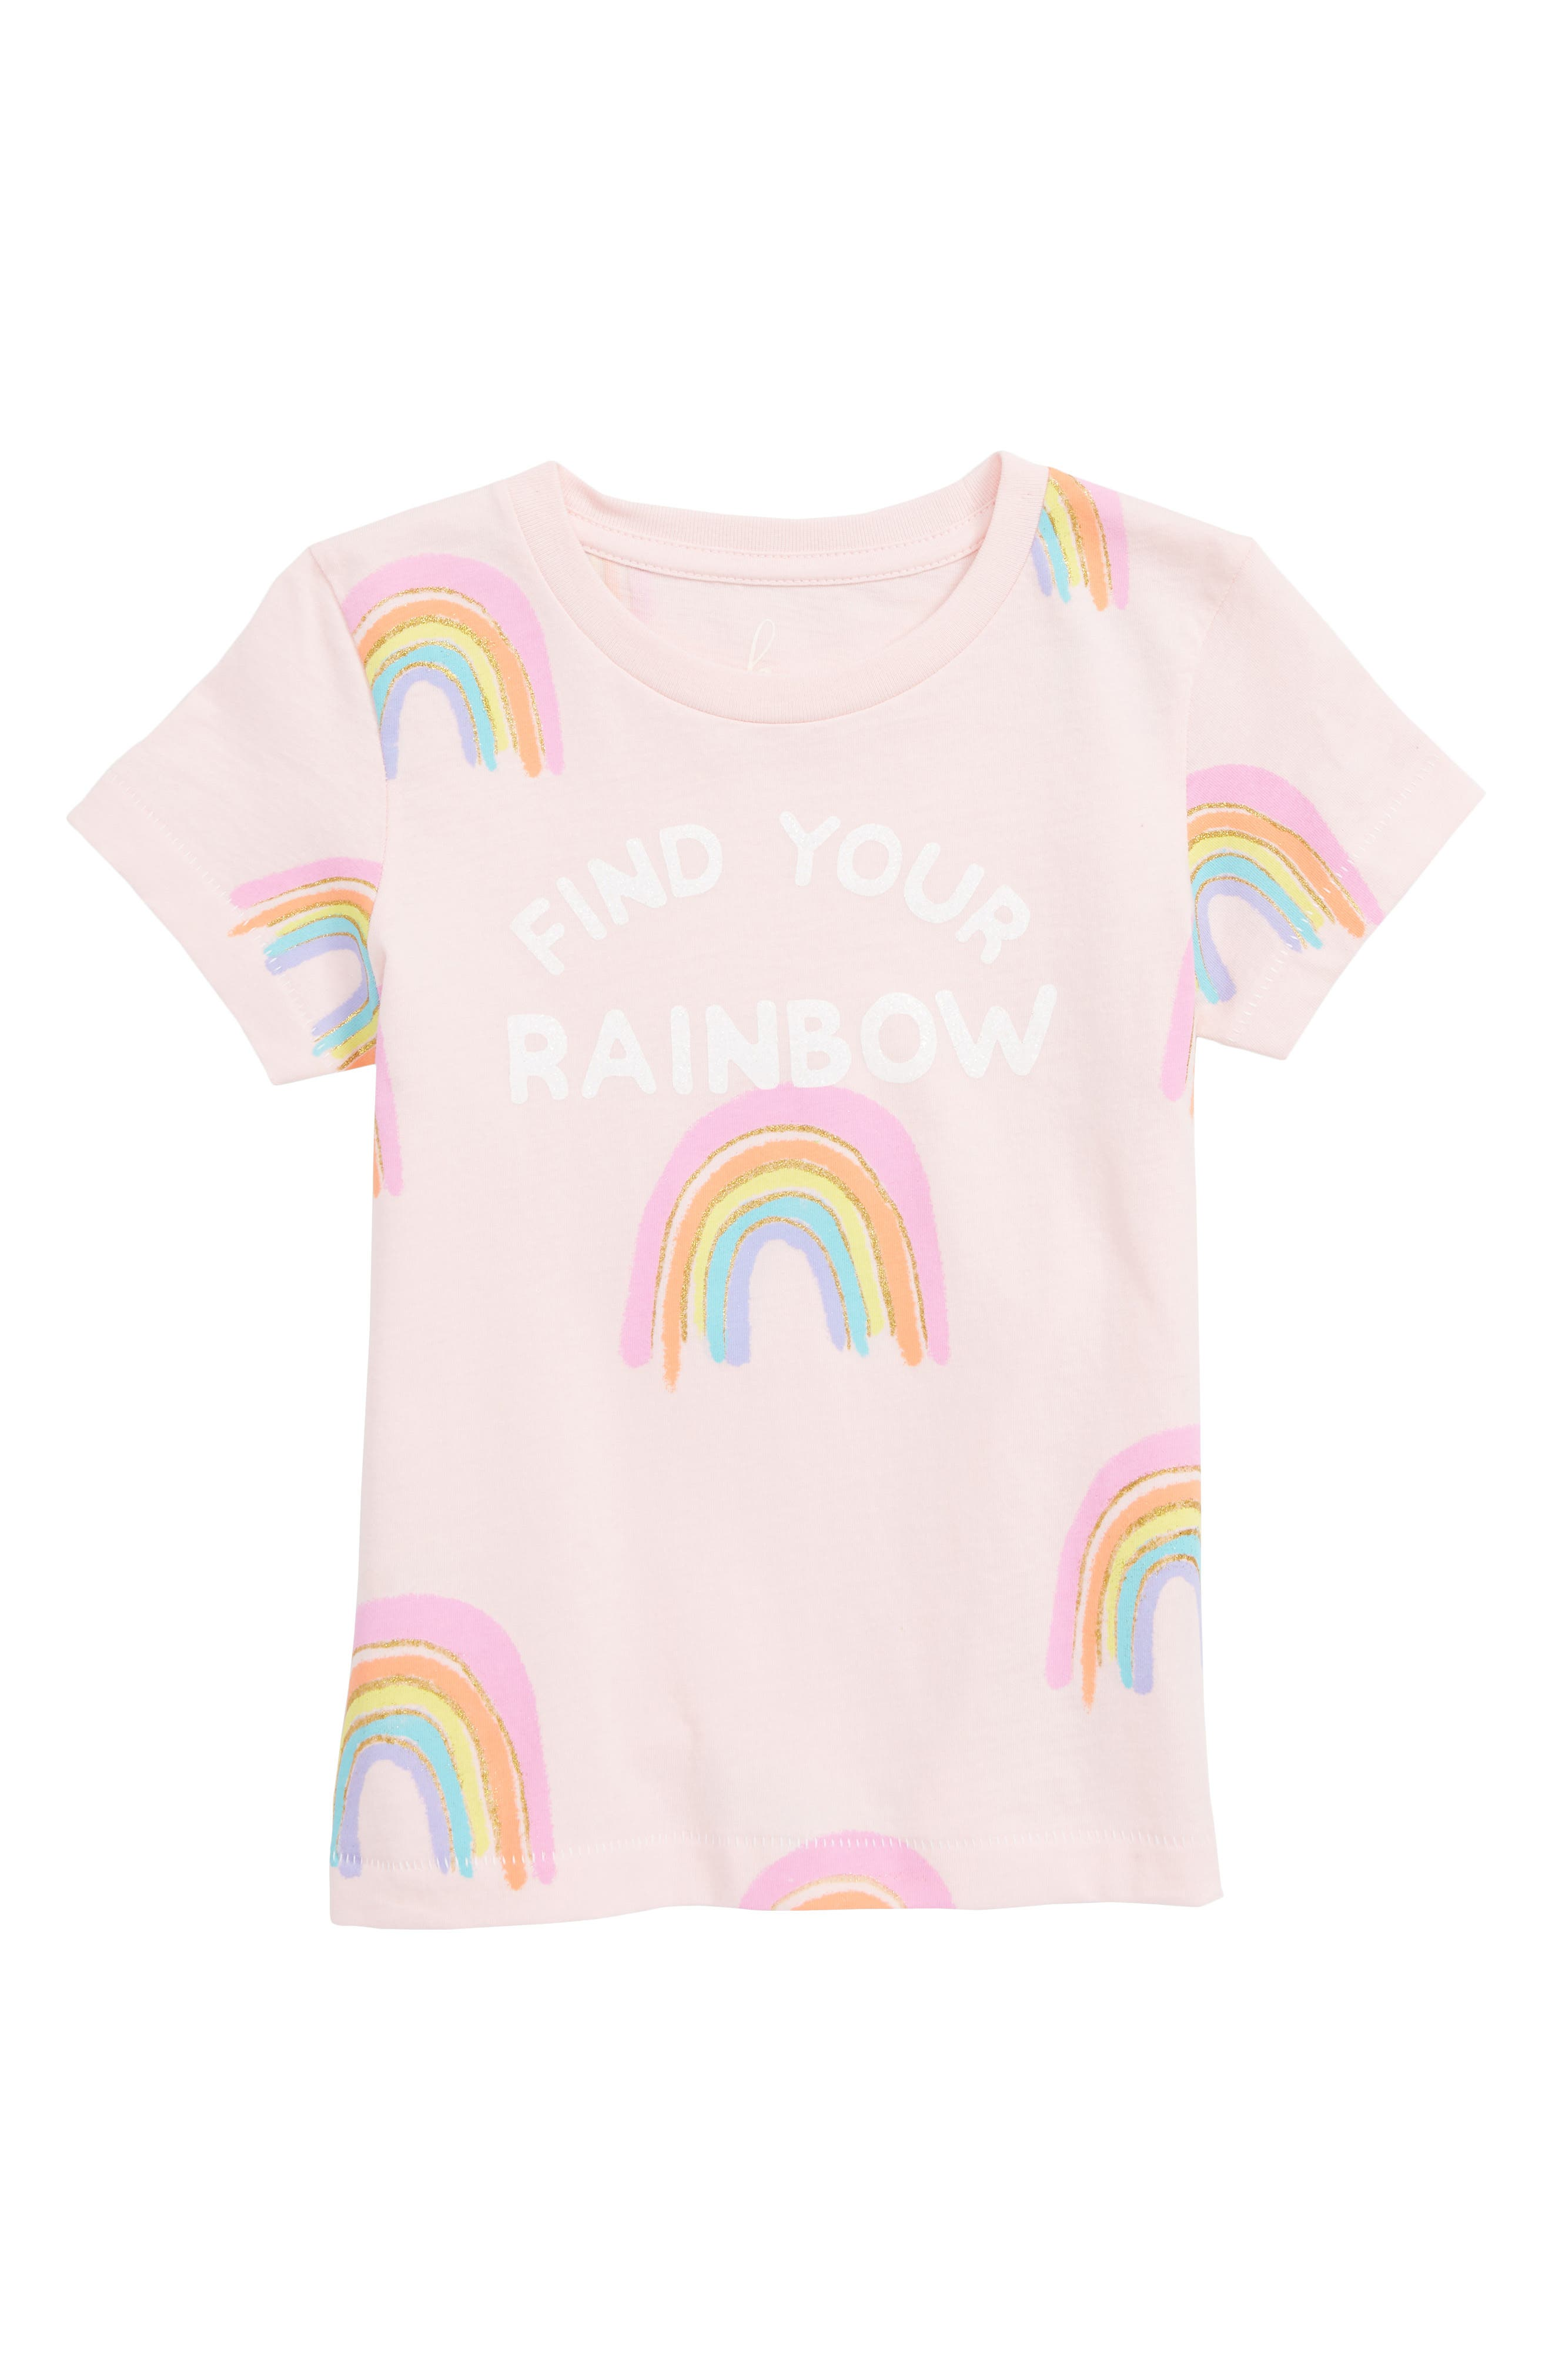 PEEK AREN'T YOU CURIOUS Peek Find Your Rainbow Graphic Tee, Main, color, PINK